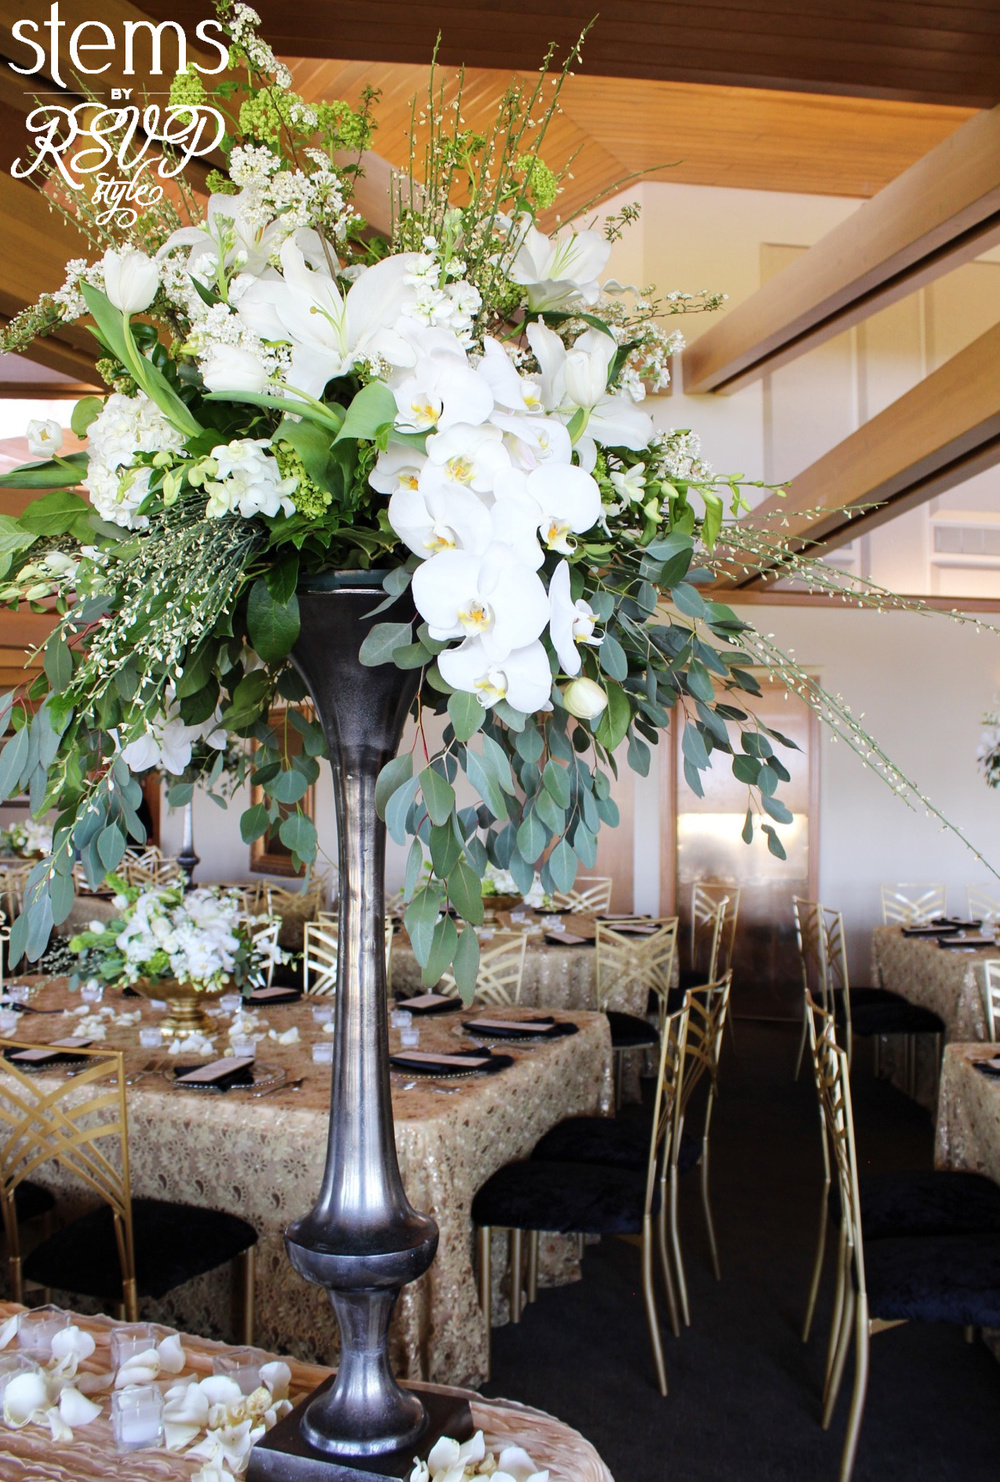 Reception floral arrangement table decor/centerpiece